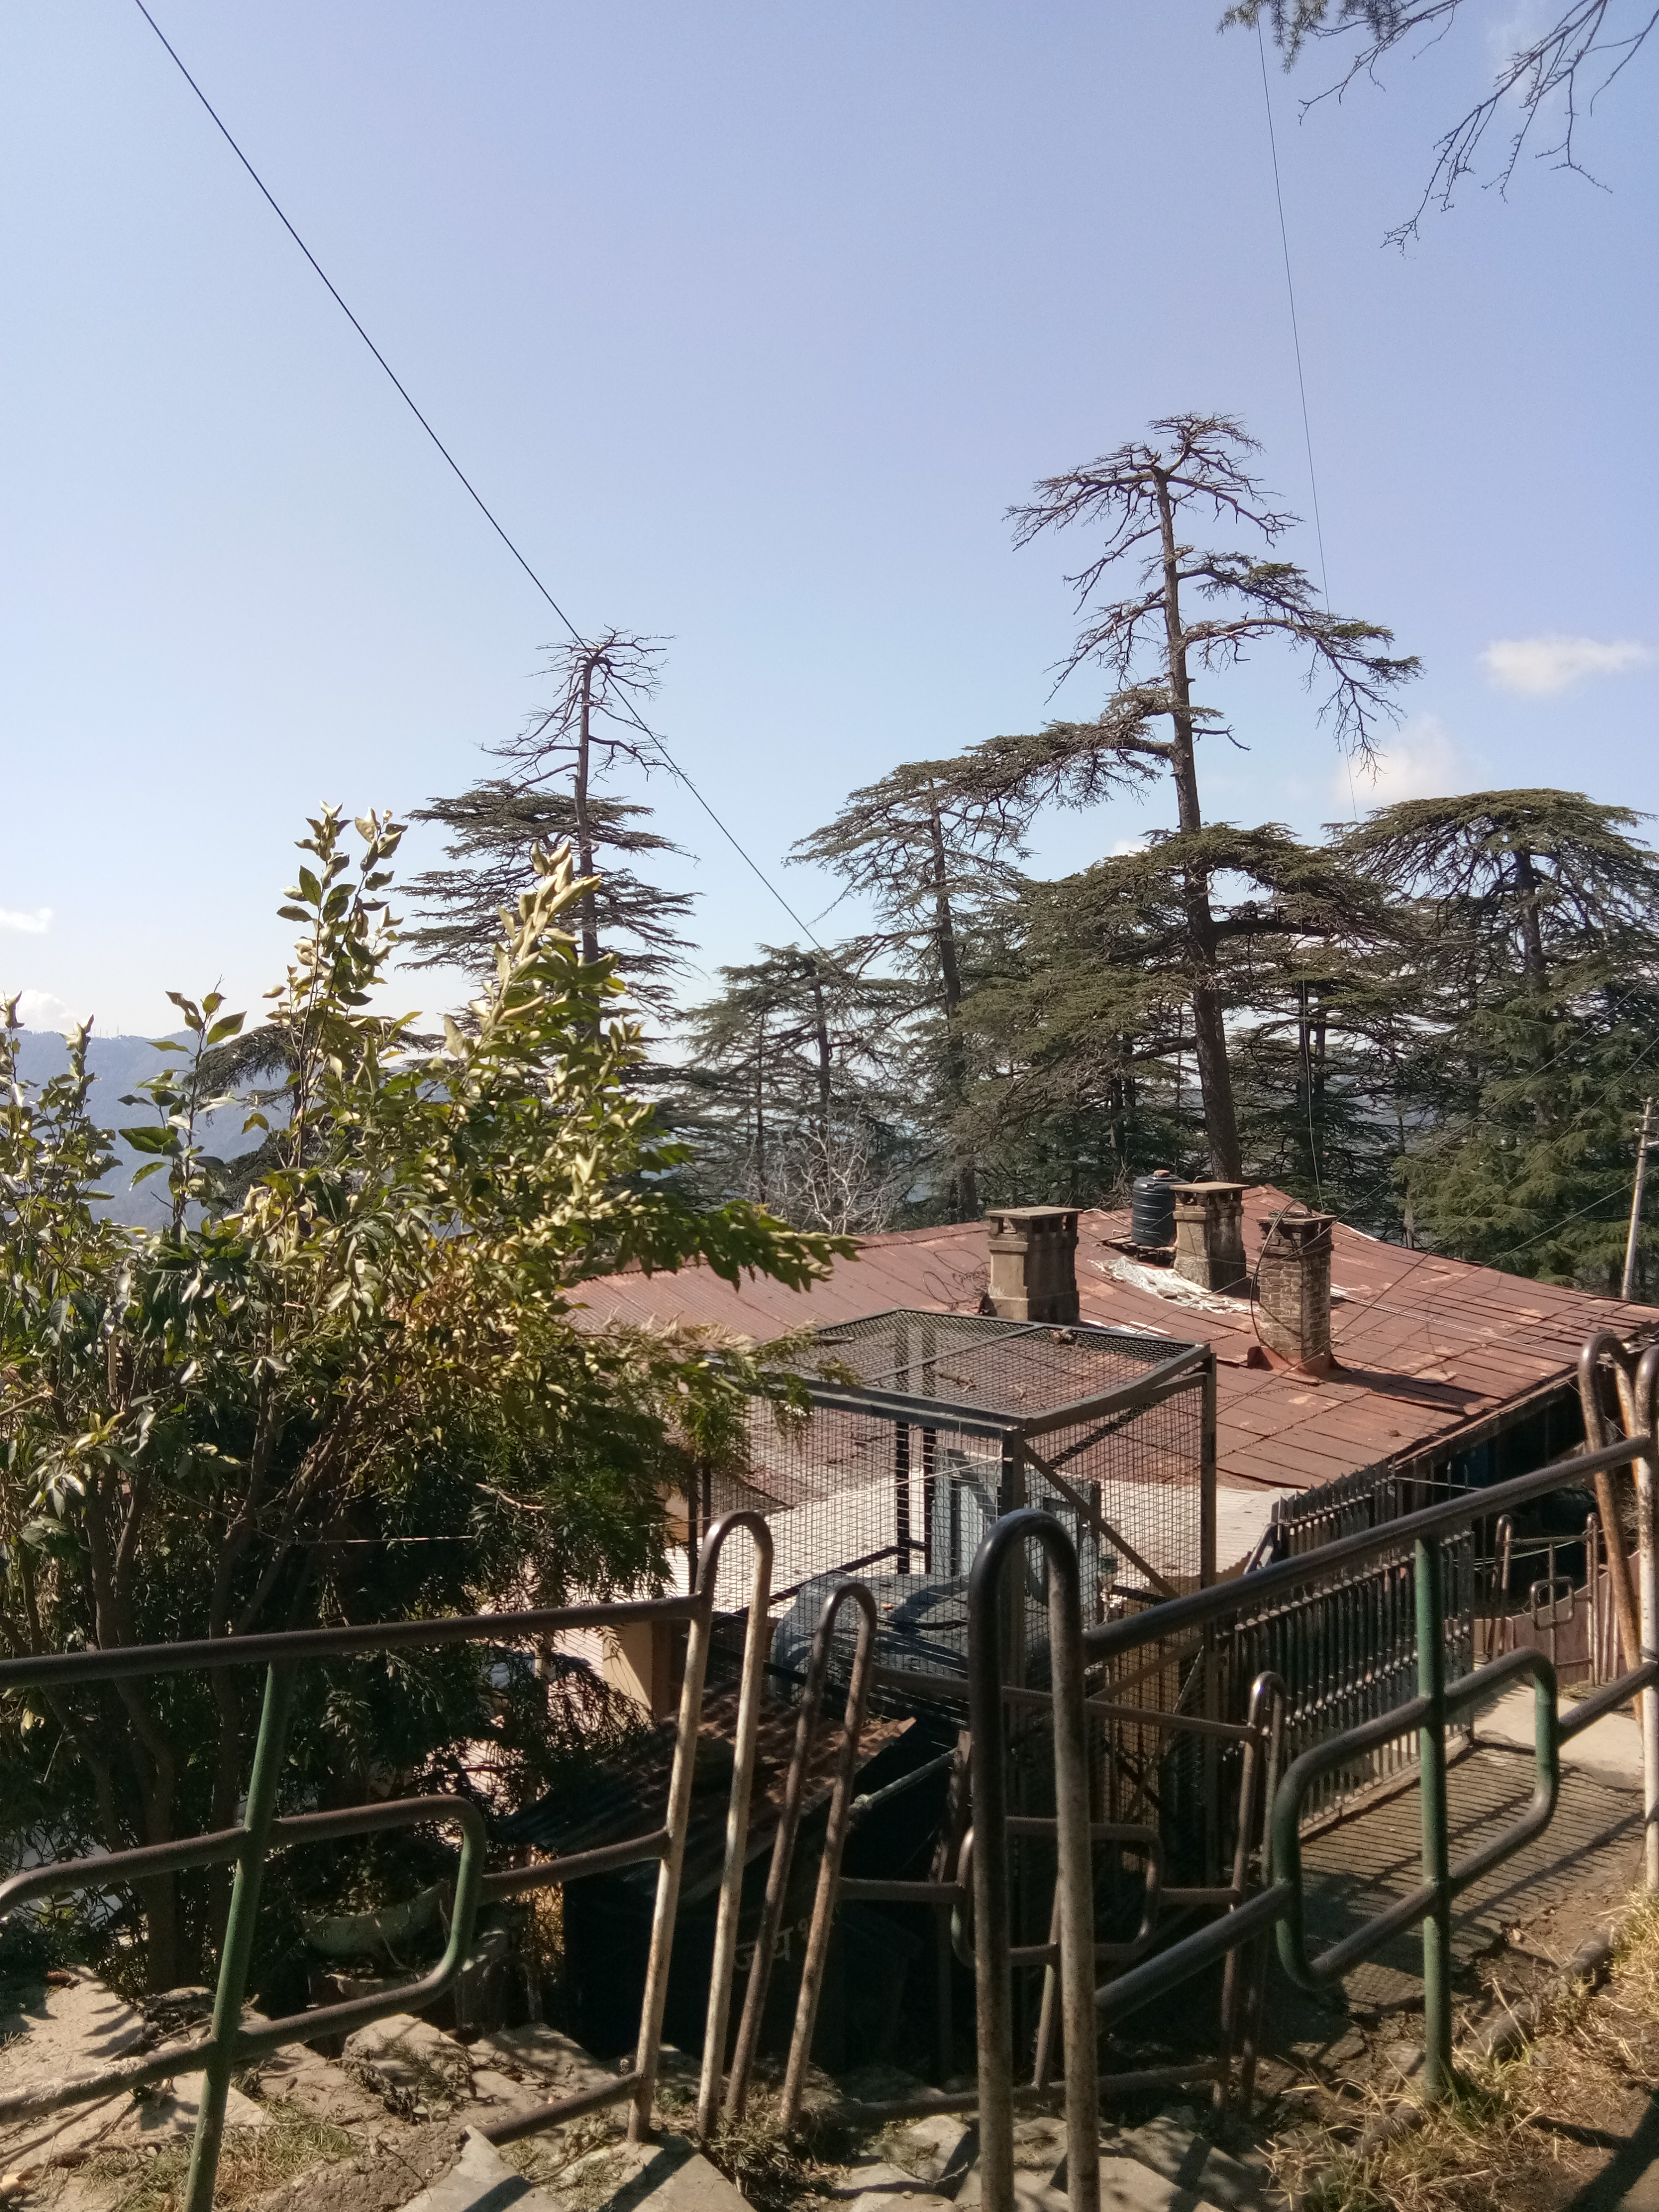 38 Biswa Plot for sale at Near St' Edward School Shimla HP — Drive in — Sunny and beautiful View — Close to Himland hotel and St' Edward School Shimla — Price – 4 Cr